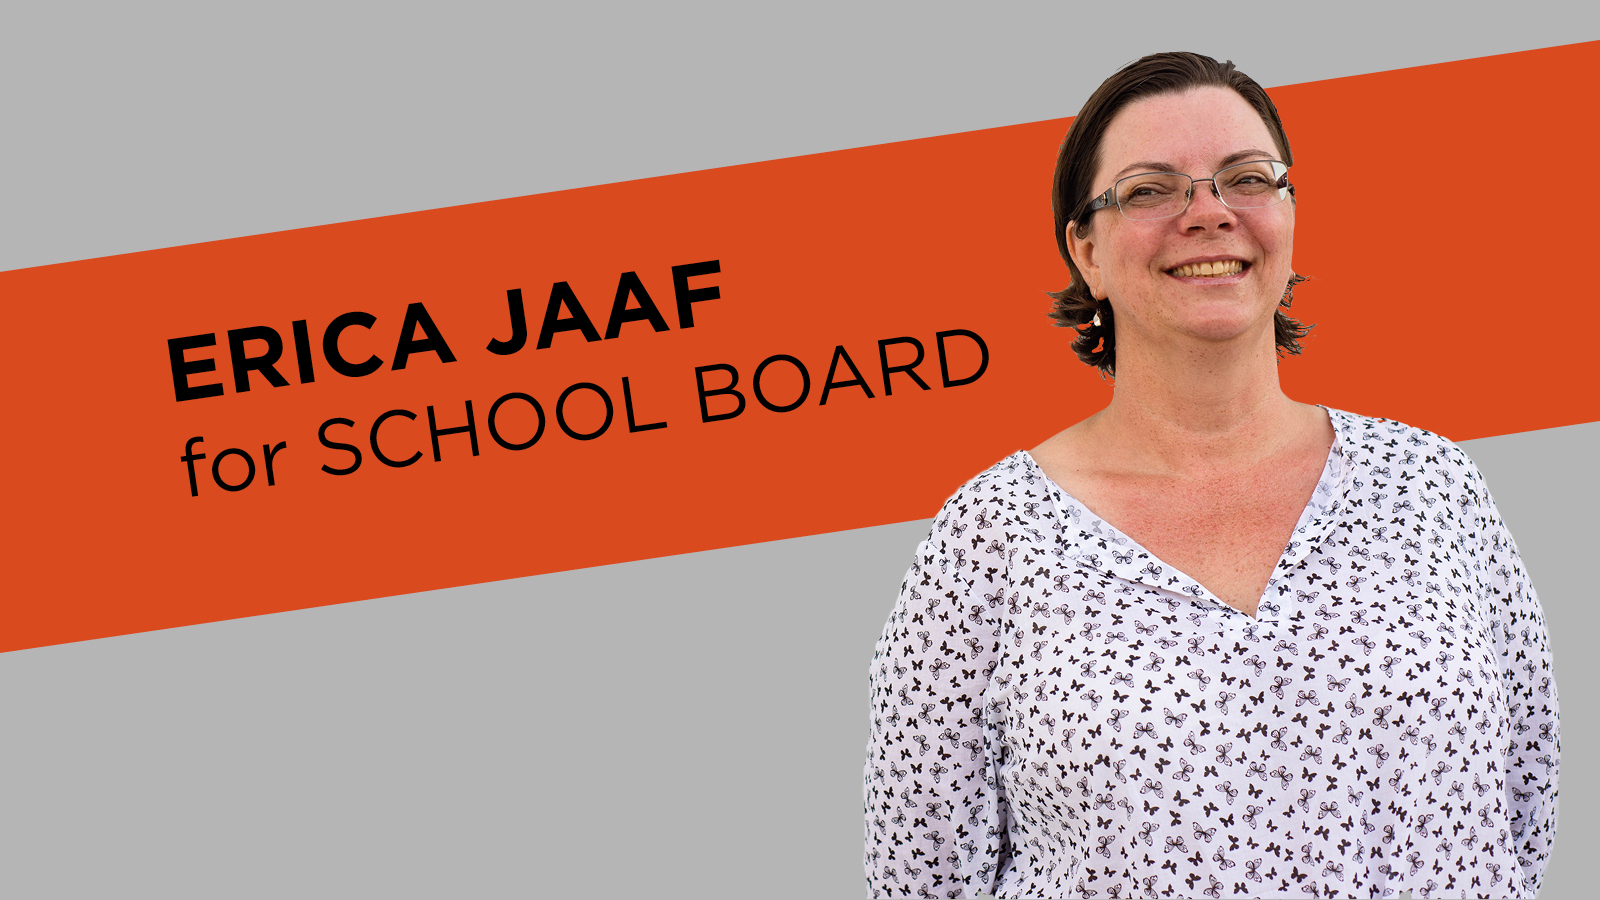 Erica Jaaf for School Board with banner